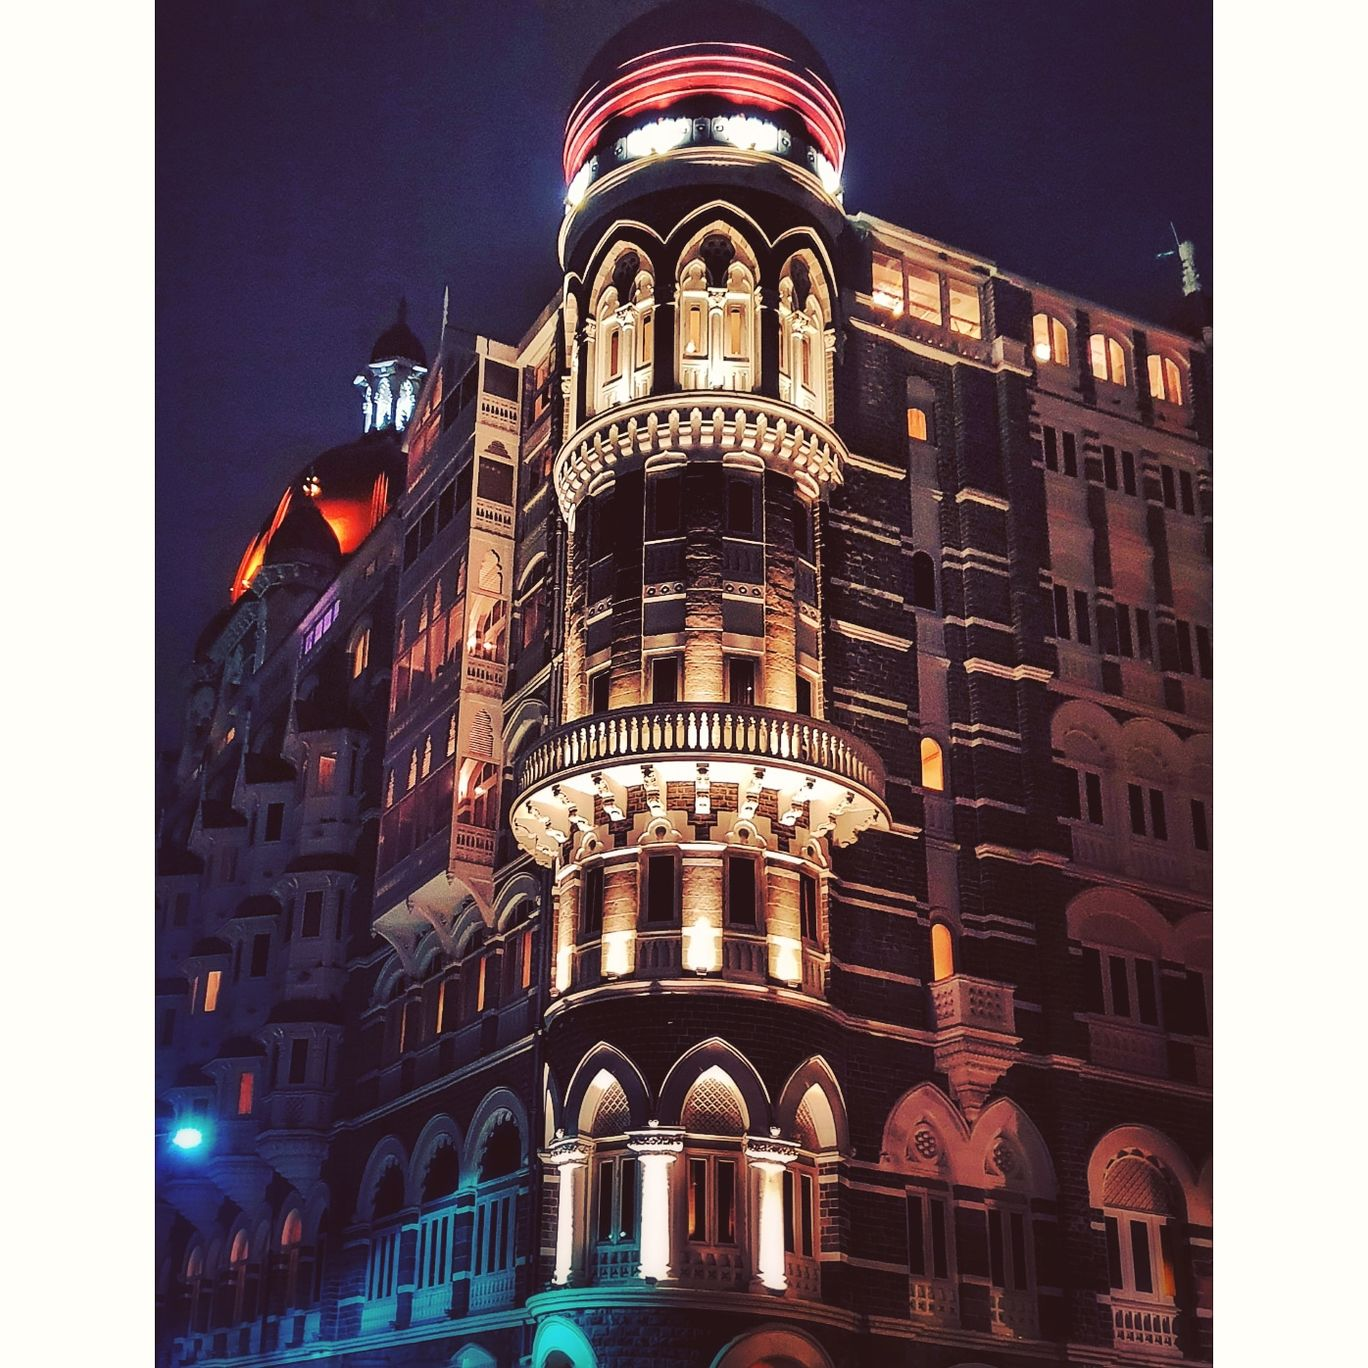 Photo of The Taj Mahal Palace By john wisdom